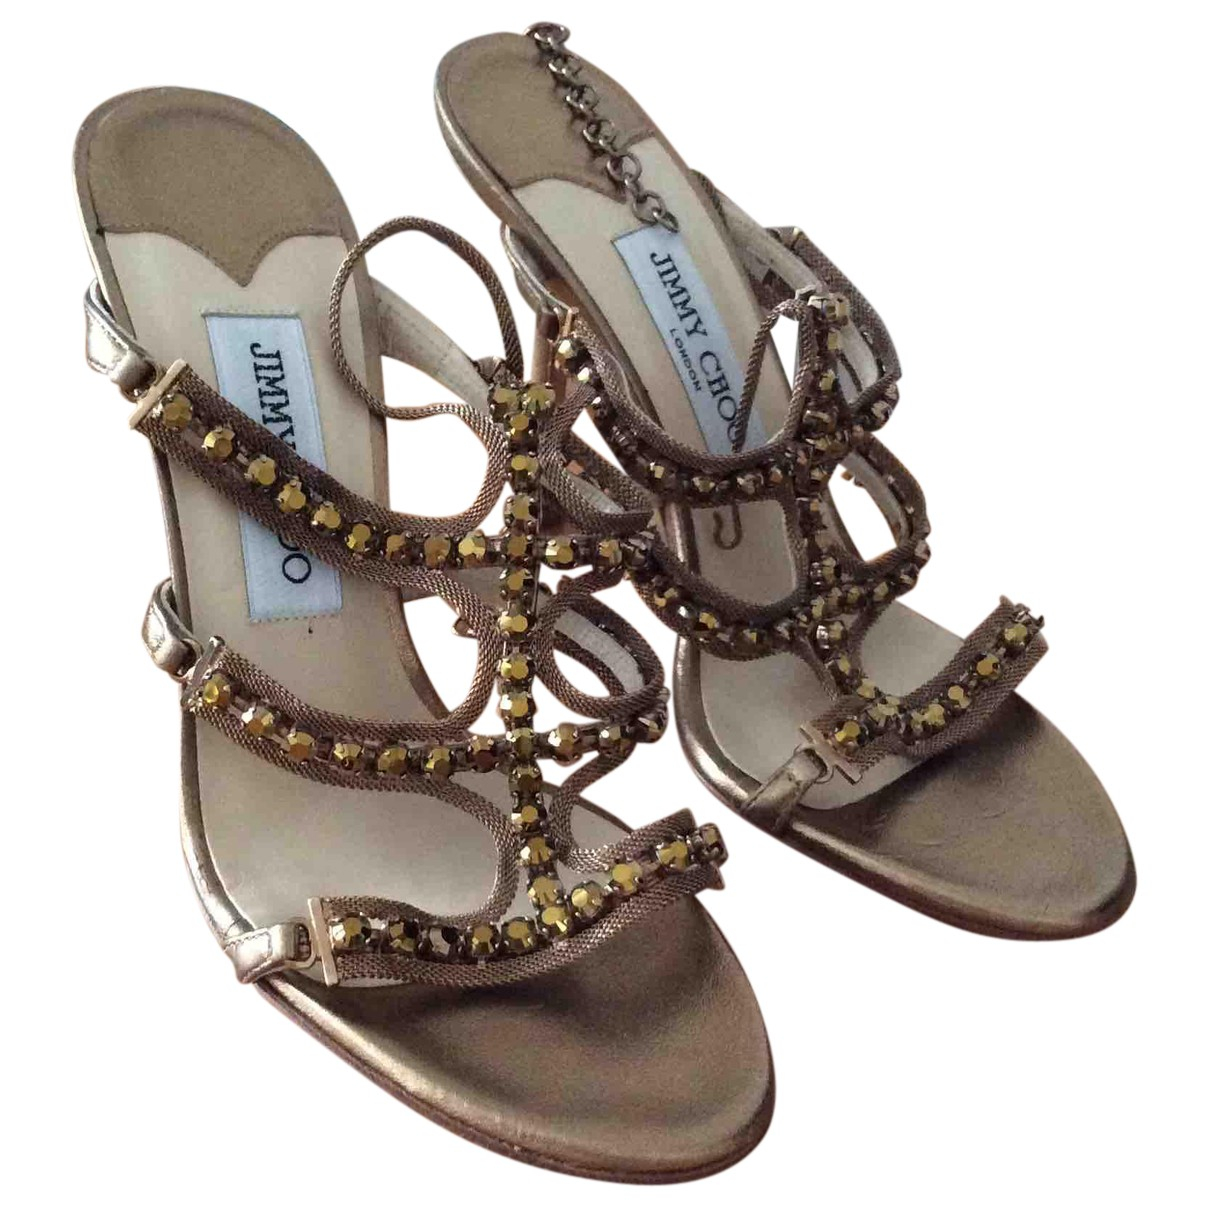 Jimmy Choo N Leather Sandals for Women 37.5 EU